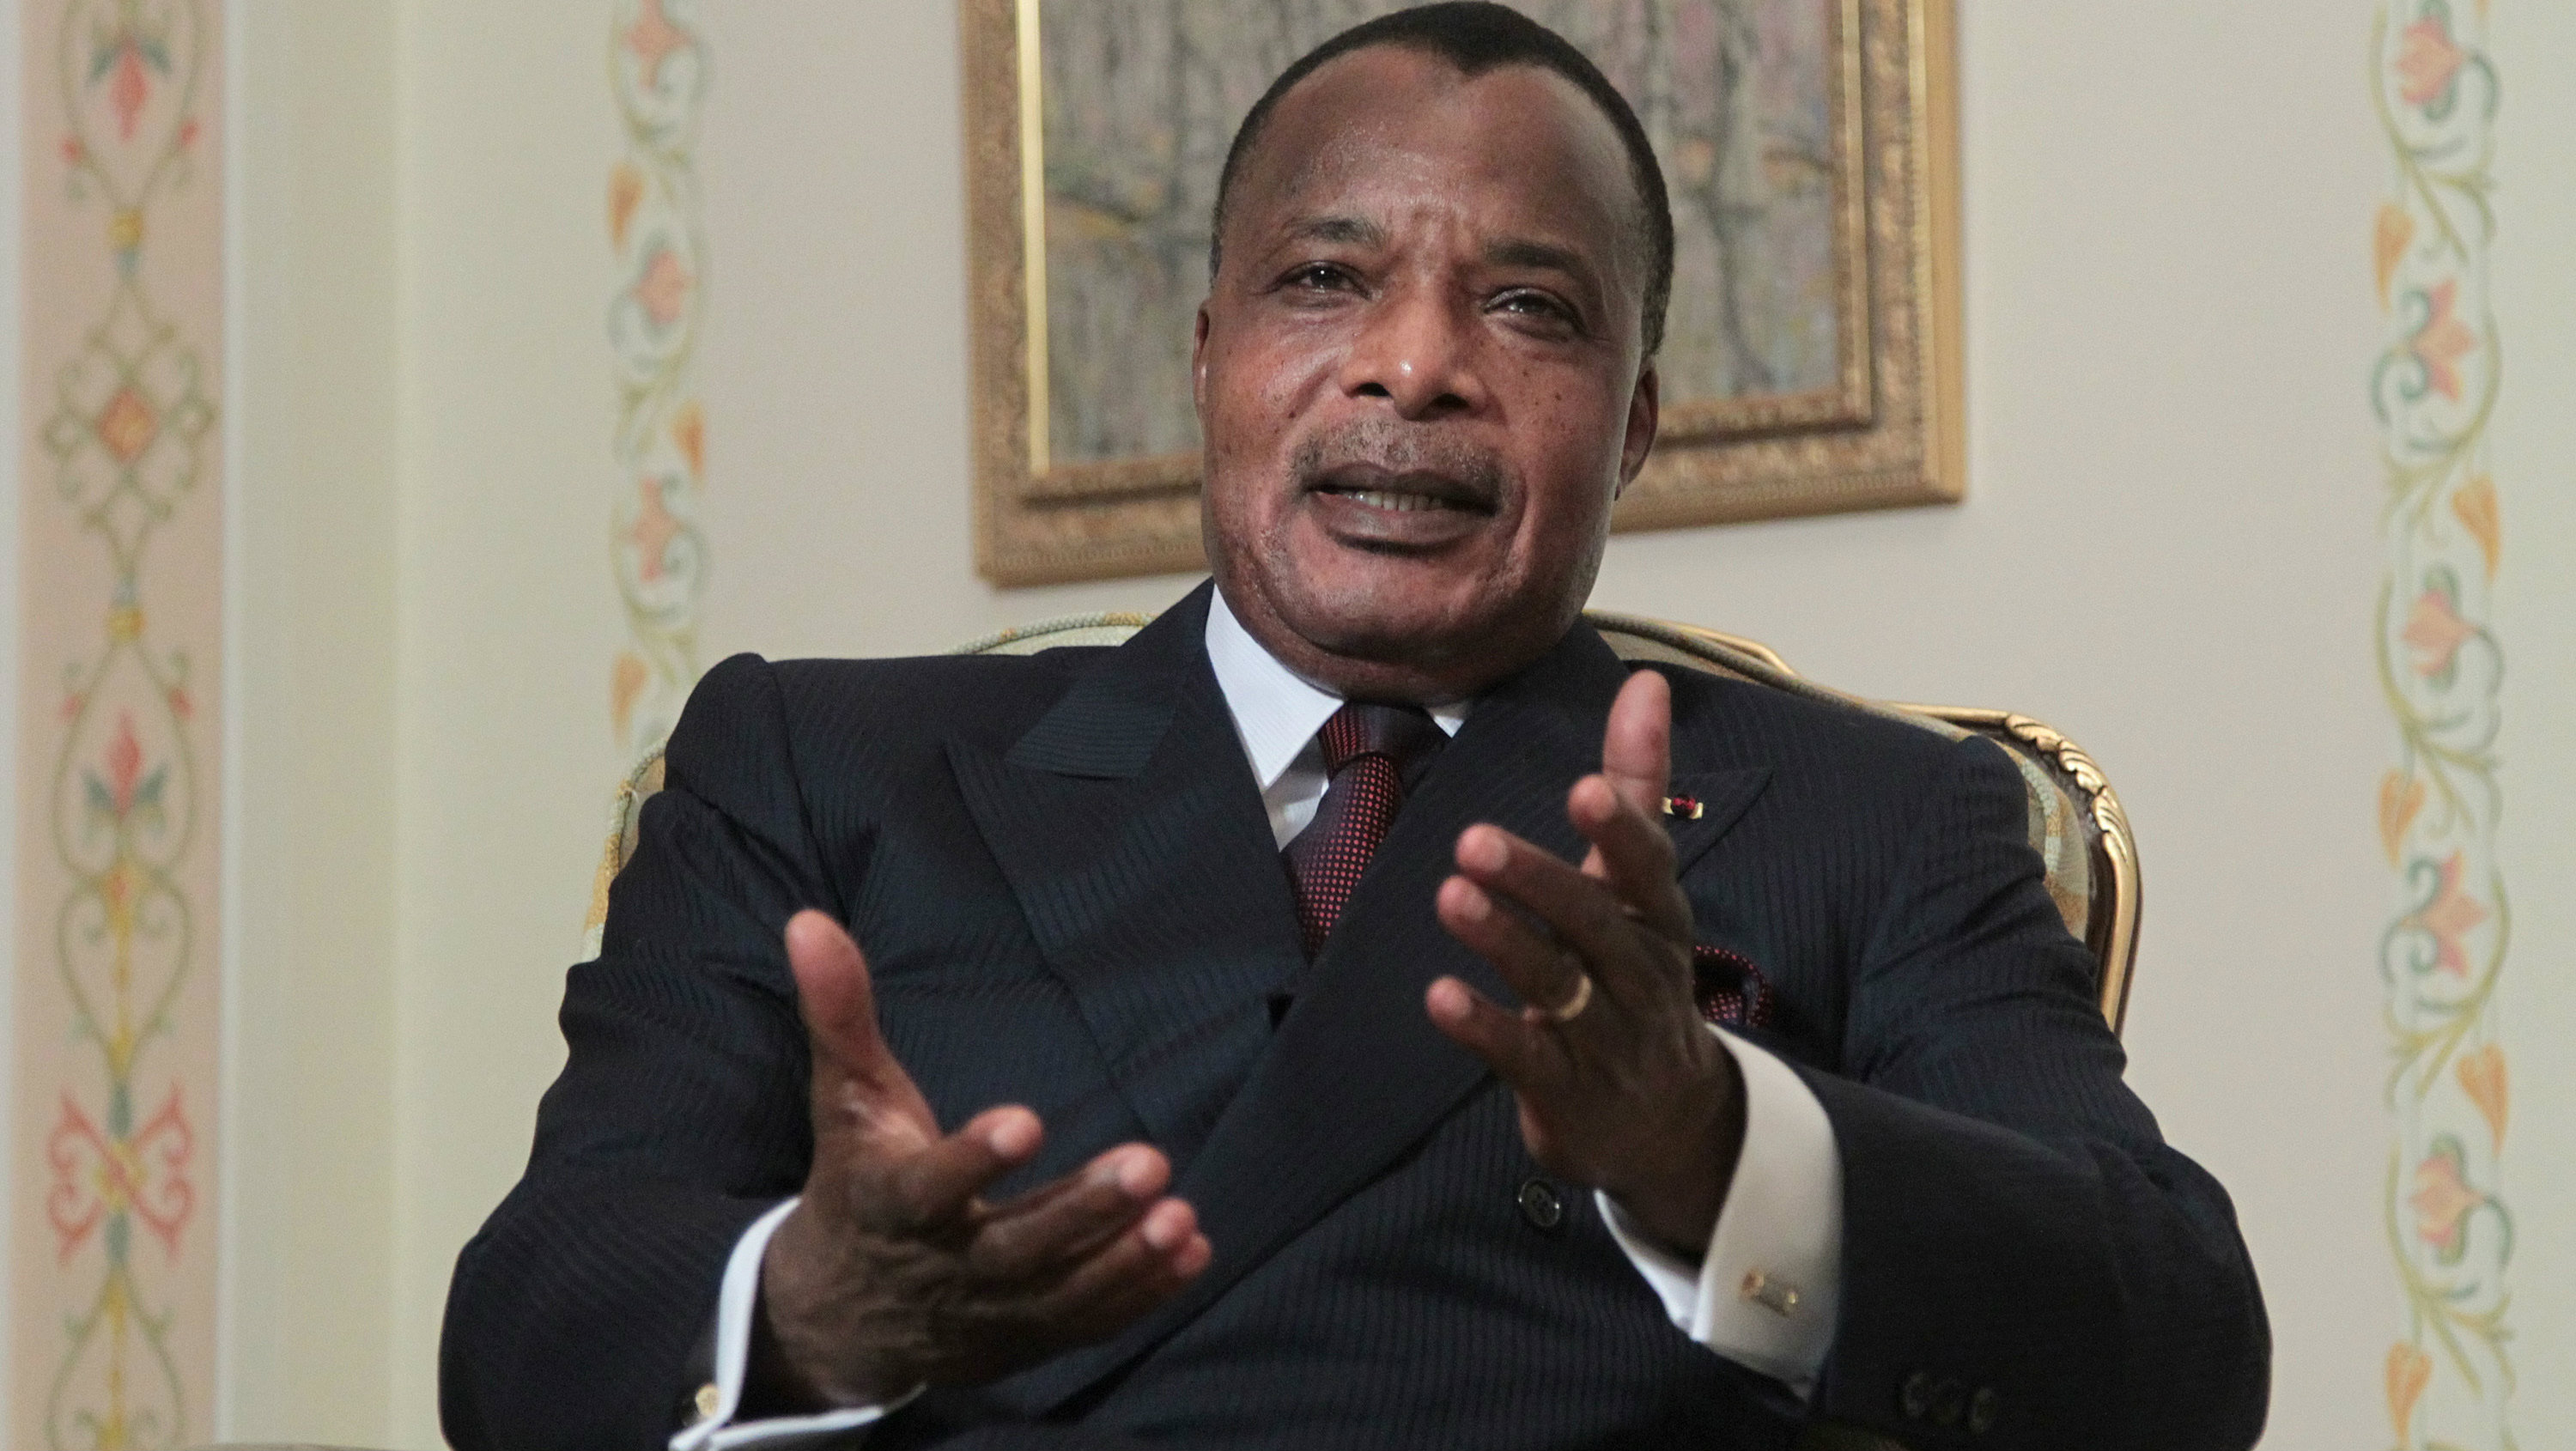 President of the Republic of Congo, Denis Sassou-Nguesso speaks during a meeting with Russian President Vladimir Putin in the Novo-Ogaryovo residence outside Moscow, Russia, Tuesday, Nov. 13, 2012. (AP Photo/Maxim Shipenkov, Pool)